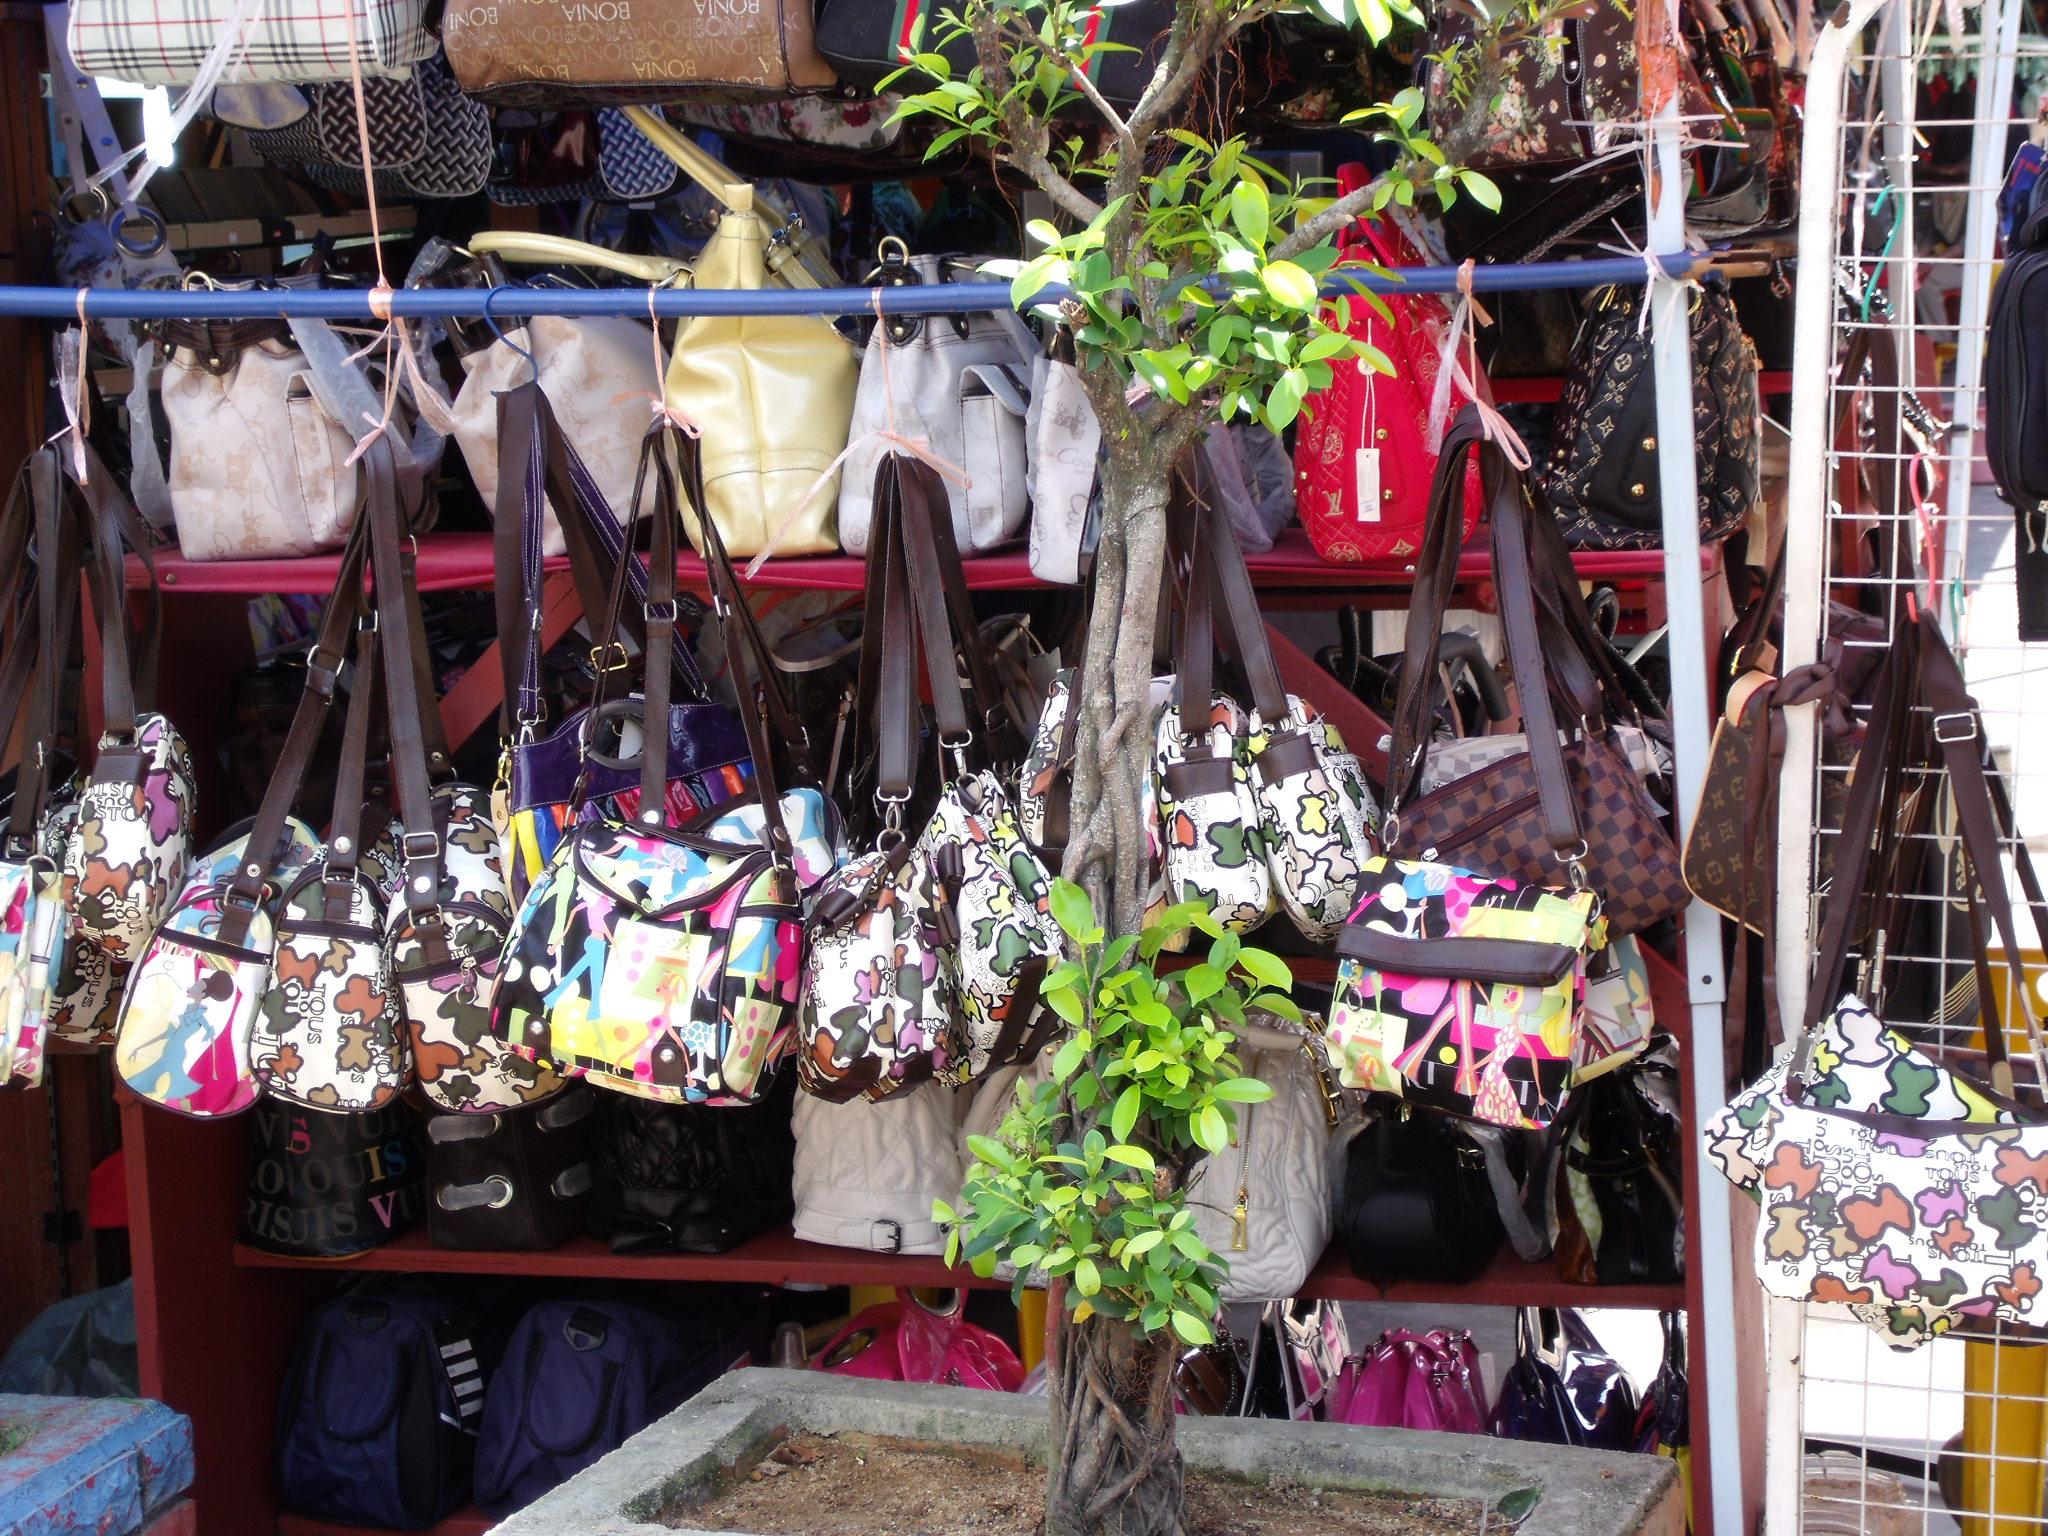 Counterfeit LV bags at a roadside shop in India. Photo credit: User: (WT-shared) Traveller at wts wikivoyage/via Wikimedia Commons [Public Domain].